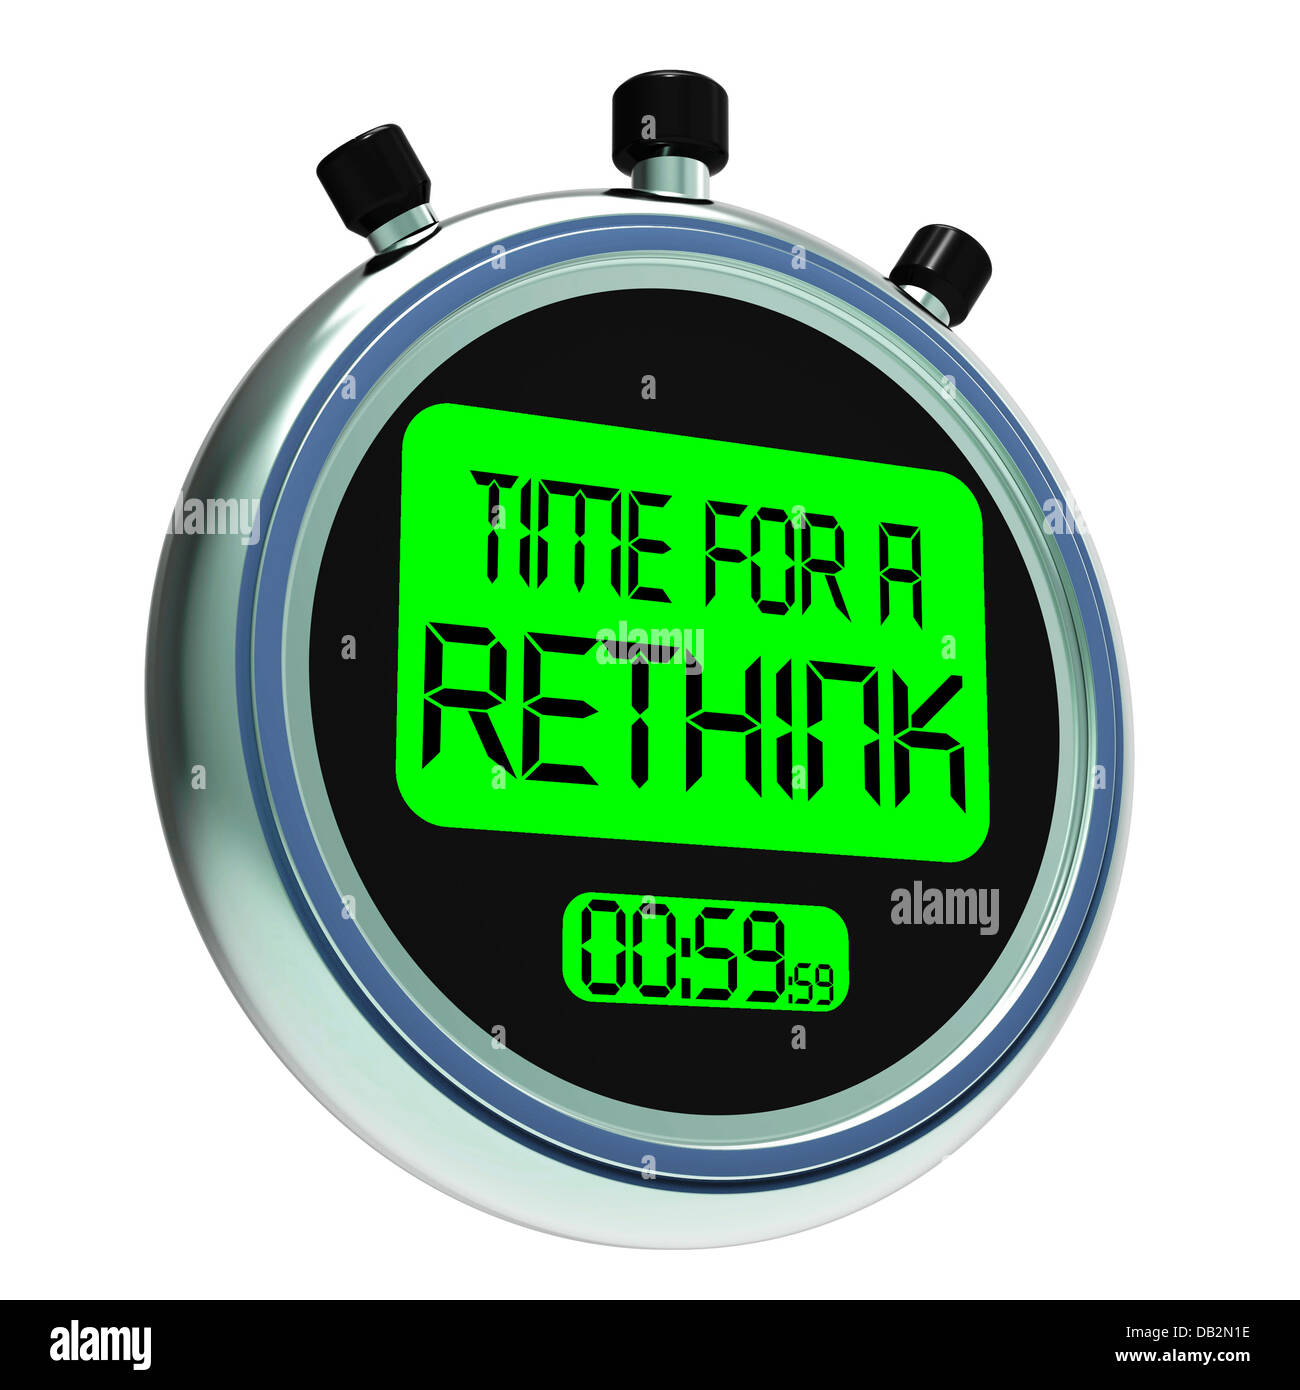 Time For A Rethink Meaning Change Strategy - Stock Image